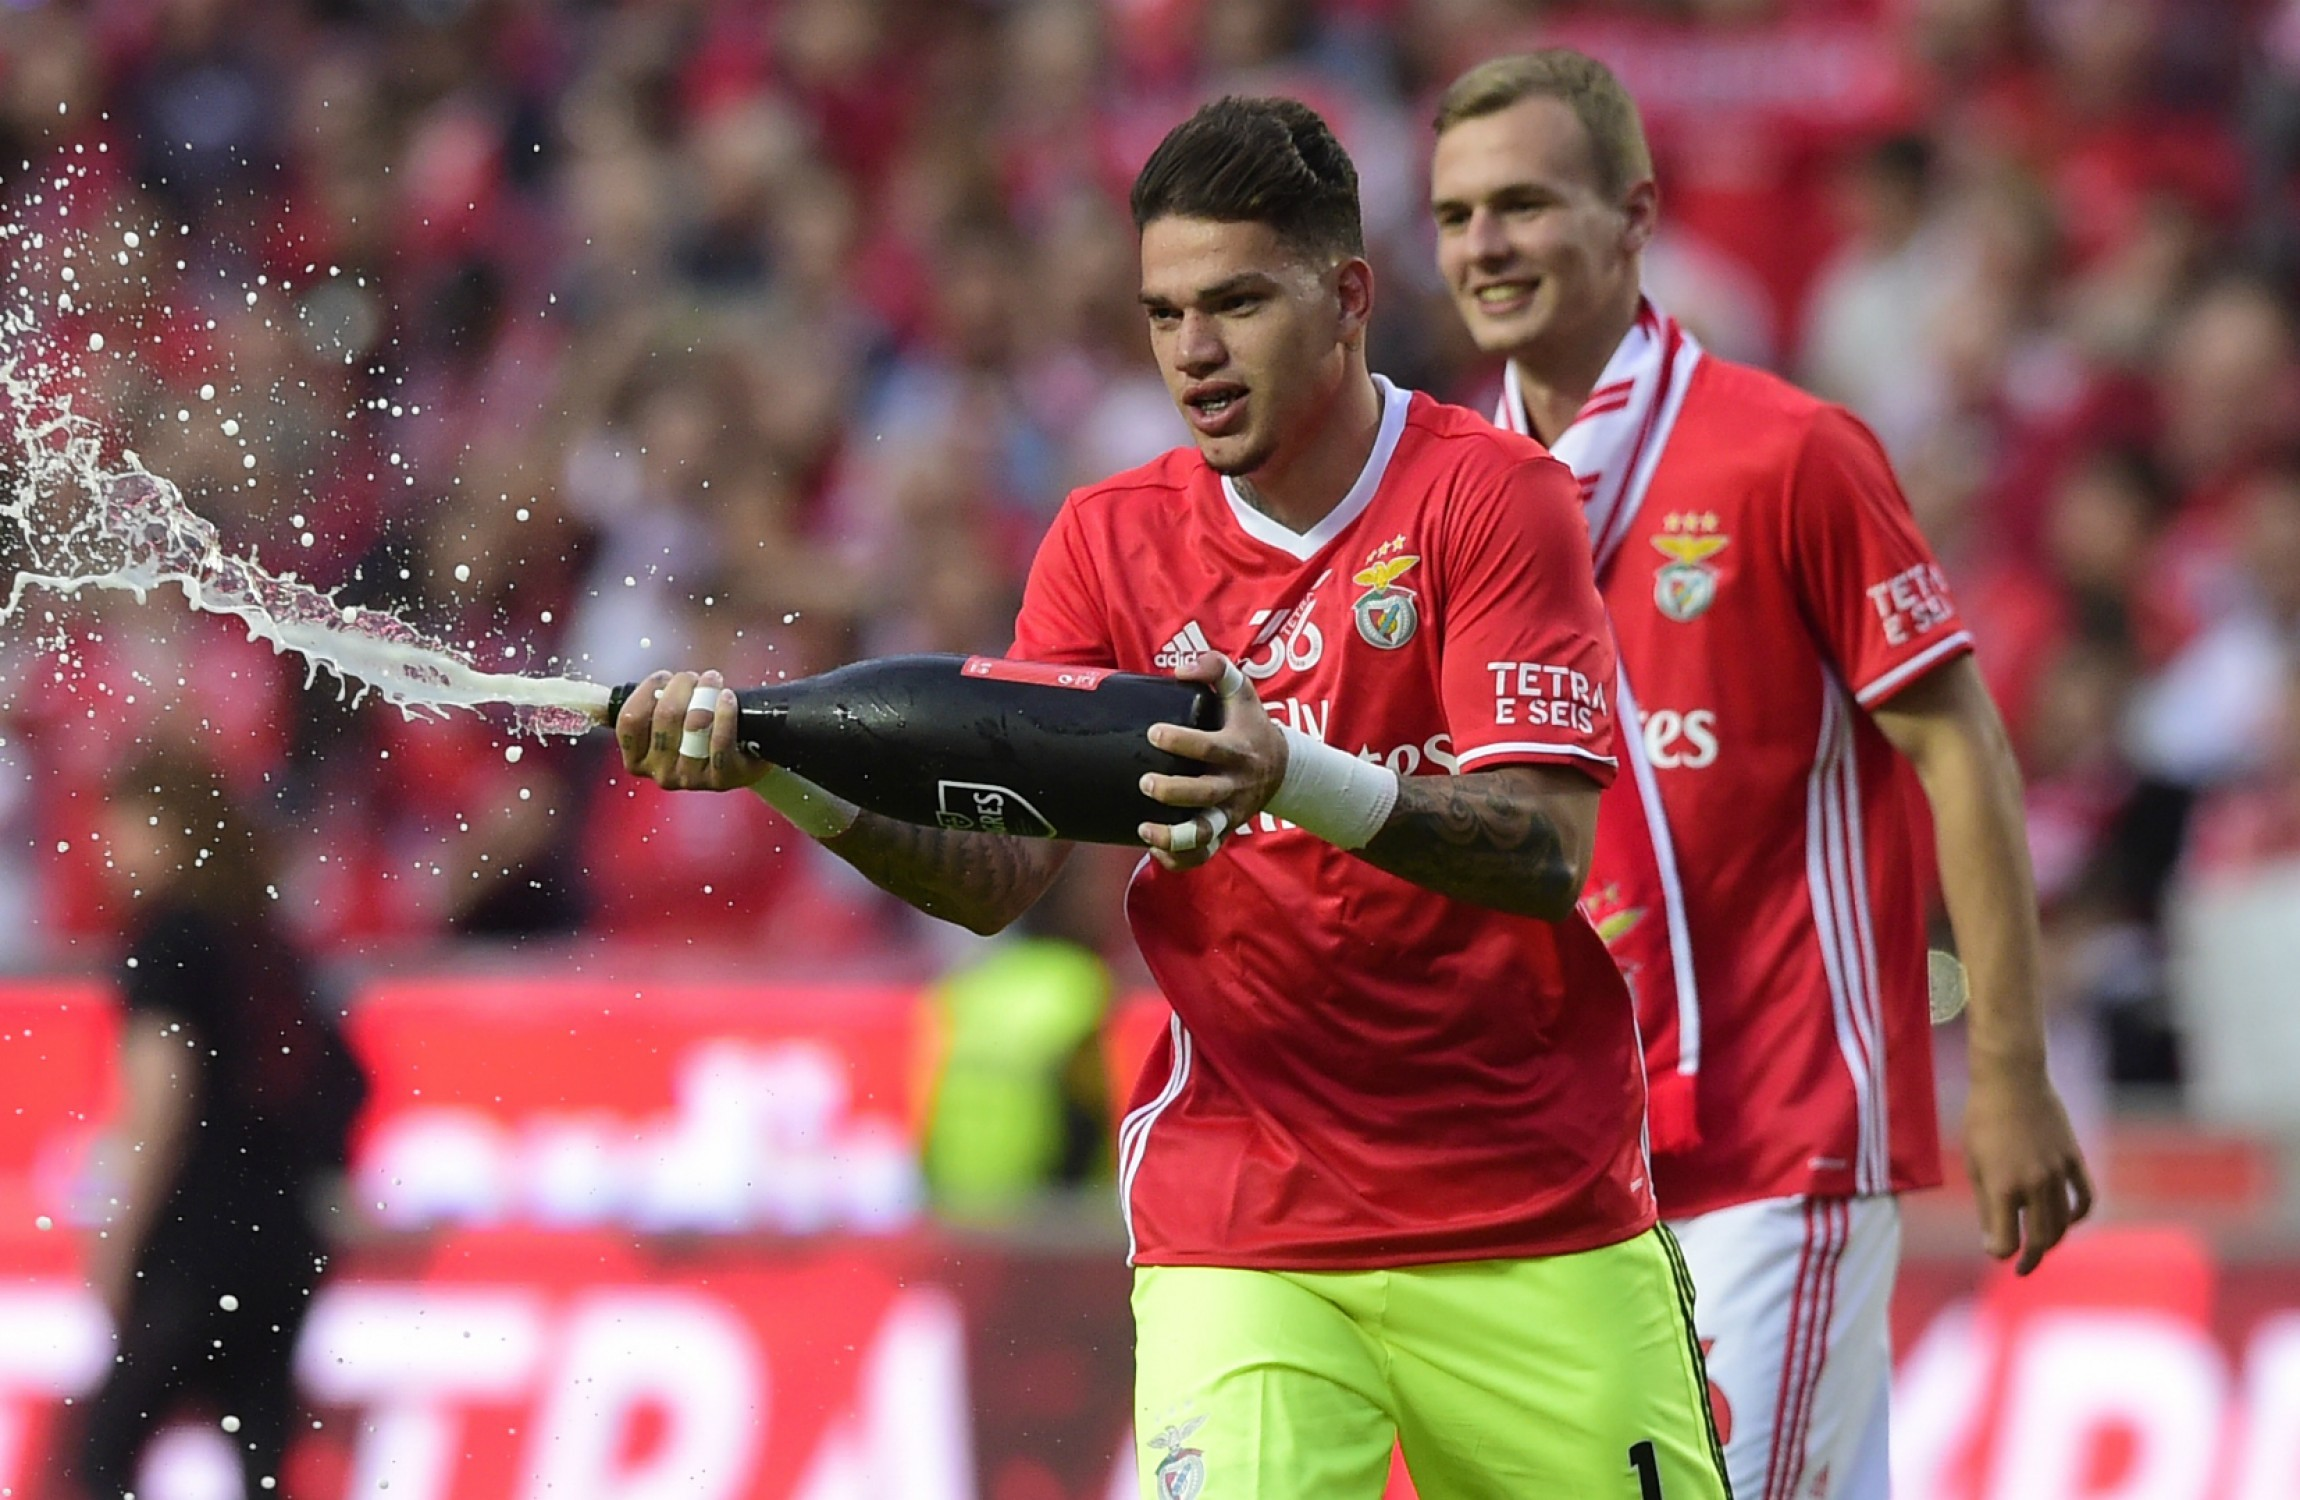 Manchester City sign SL Benfica goalkeeper Ederson Moraes for $45 million